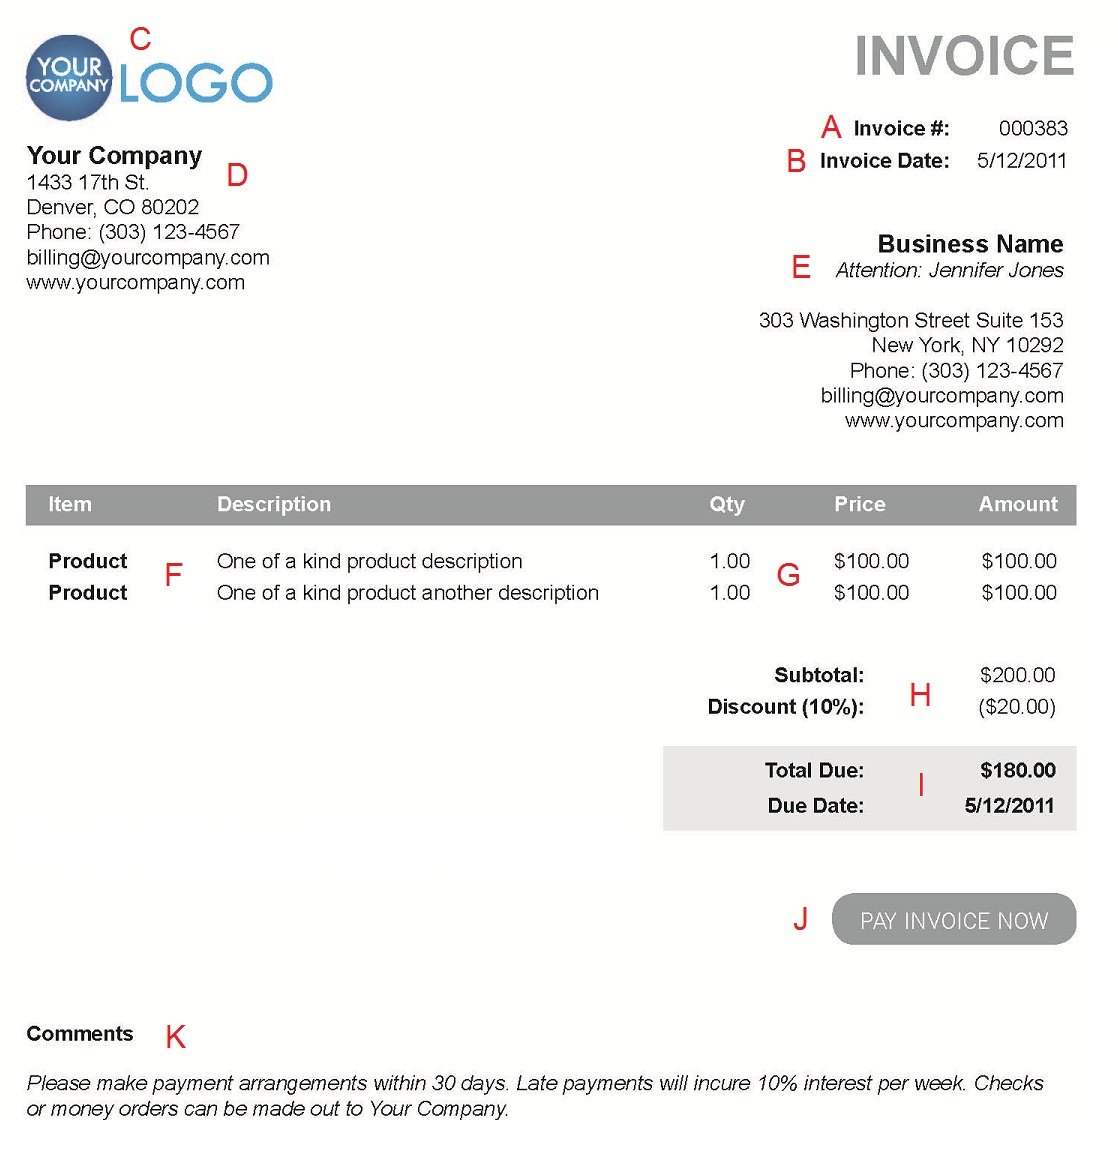 Aaaaeroincus  Sweet The  Different Sections Of An Electronic Payment Invoice With Hot A  With Charming Ticket Receipt Template Also Outlook  Read Receipt Not Working In Addition Definition Receipt And Adams Receipt Book As Well As Billing Receipt Additionally Make Receipts For Your Business From Paysimplecom With Aaaaeroincus  Hot The  Different Sections Of An Electronic Payment Invoice With Charming A  And Sweet Ticket Receipt Template Also Outlook  Read Receipt Not Working In Addition Definition Receipt From Paysimplecom